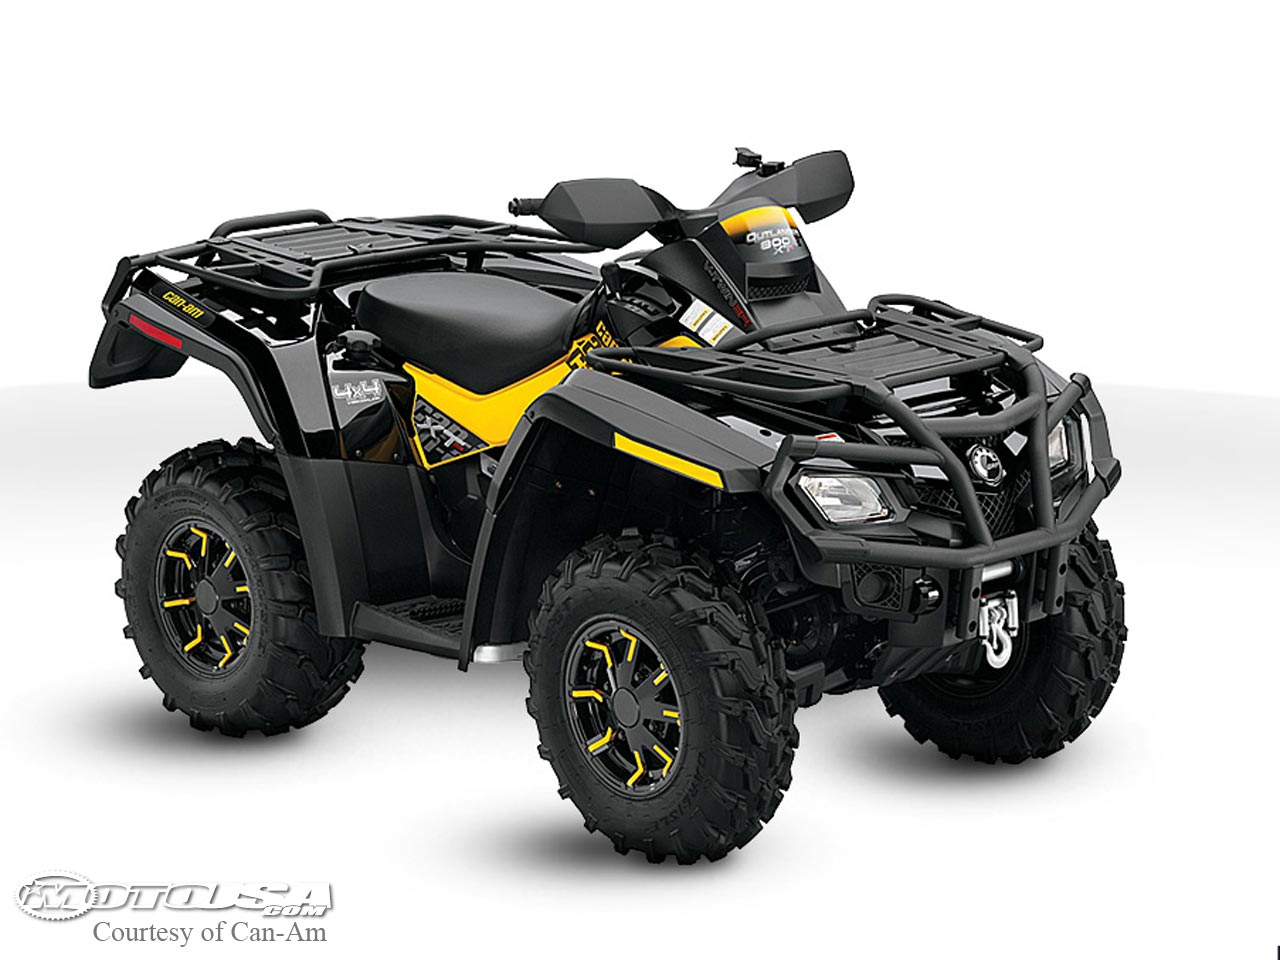 can-am outlander 800r xt-p-pic. 1